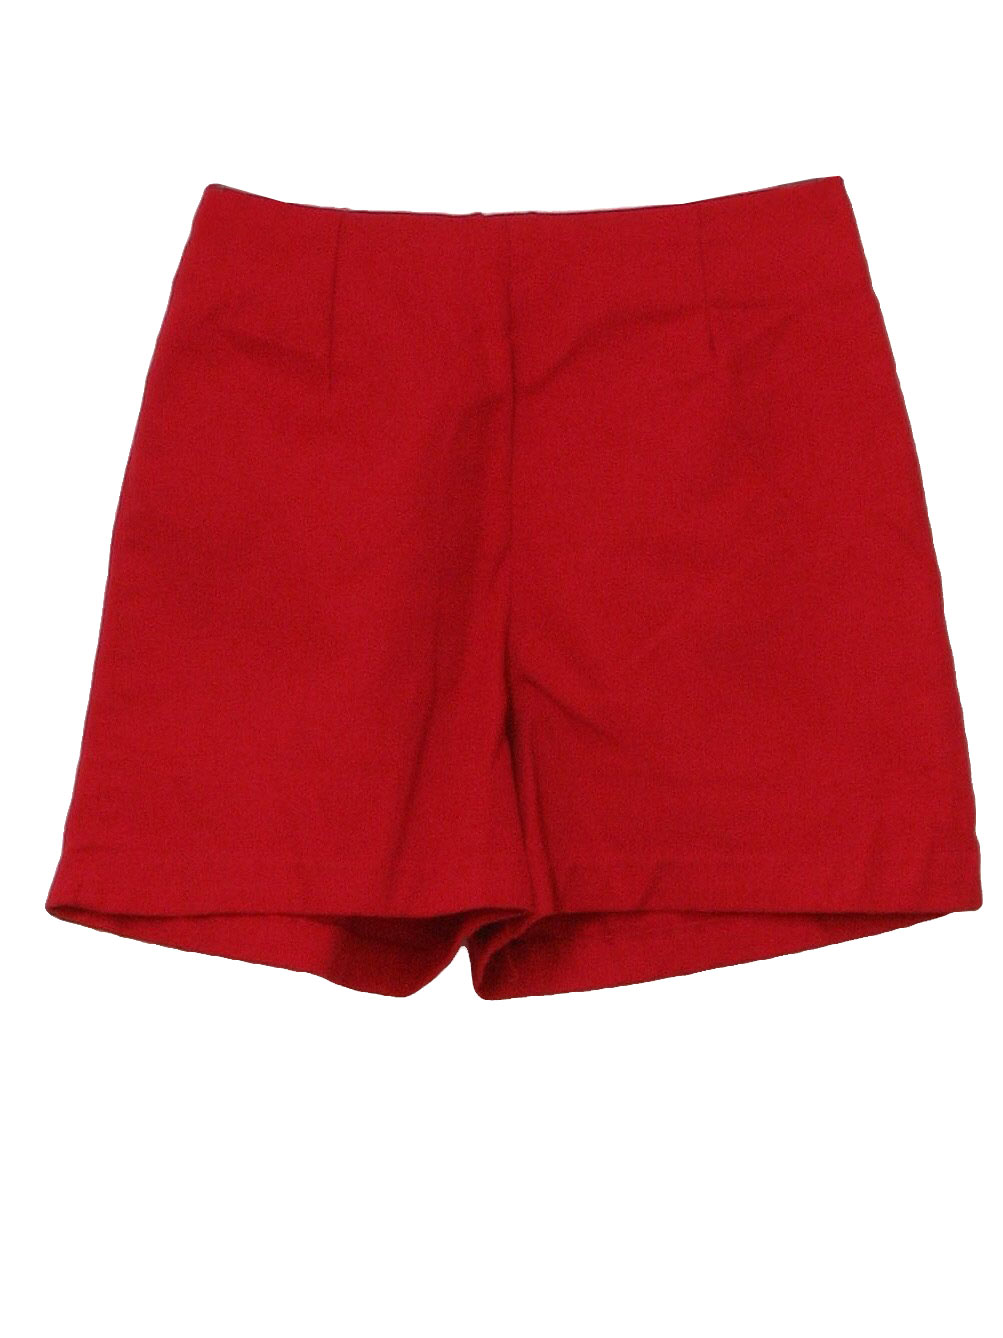 Find your adidas Women - Red - Shorts at shopnow-ahoqsxpv.ga All styles and colors available in the official adidas online store.